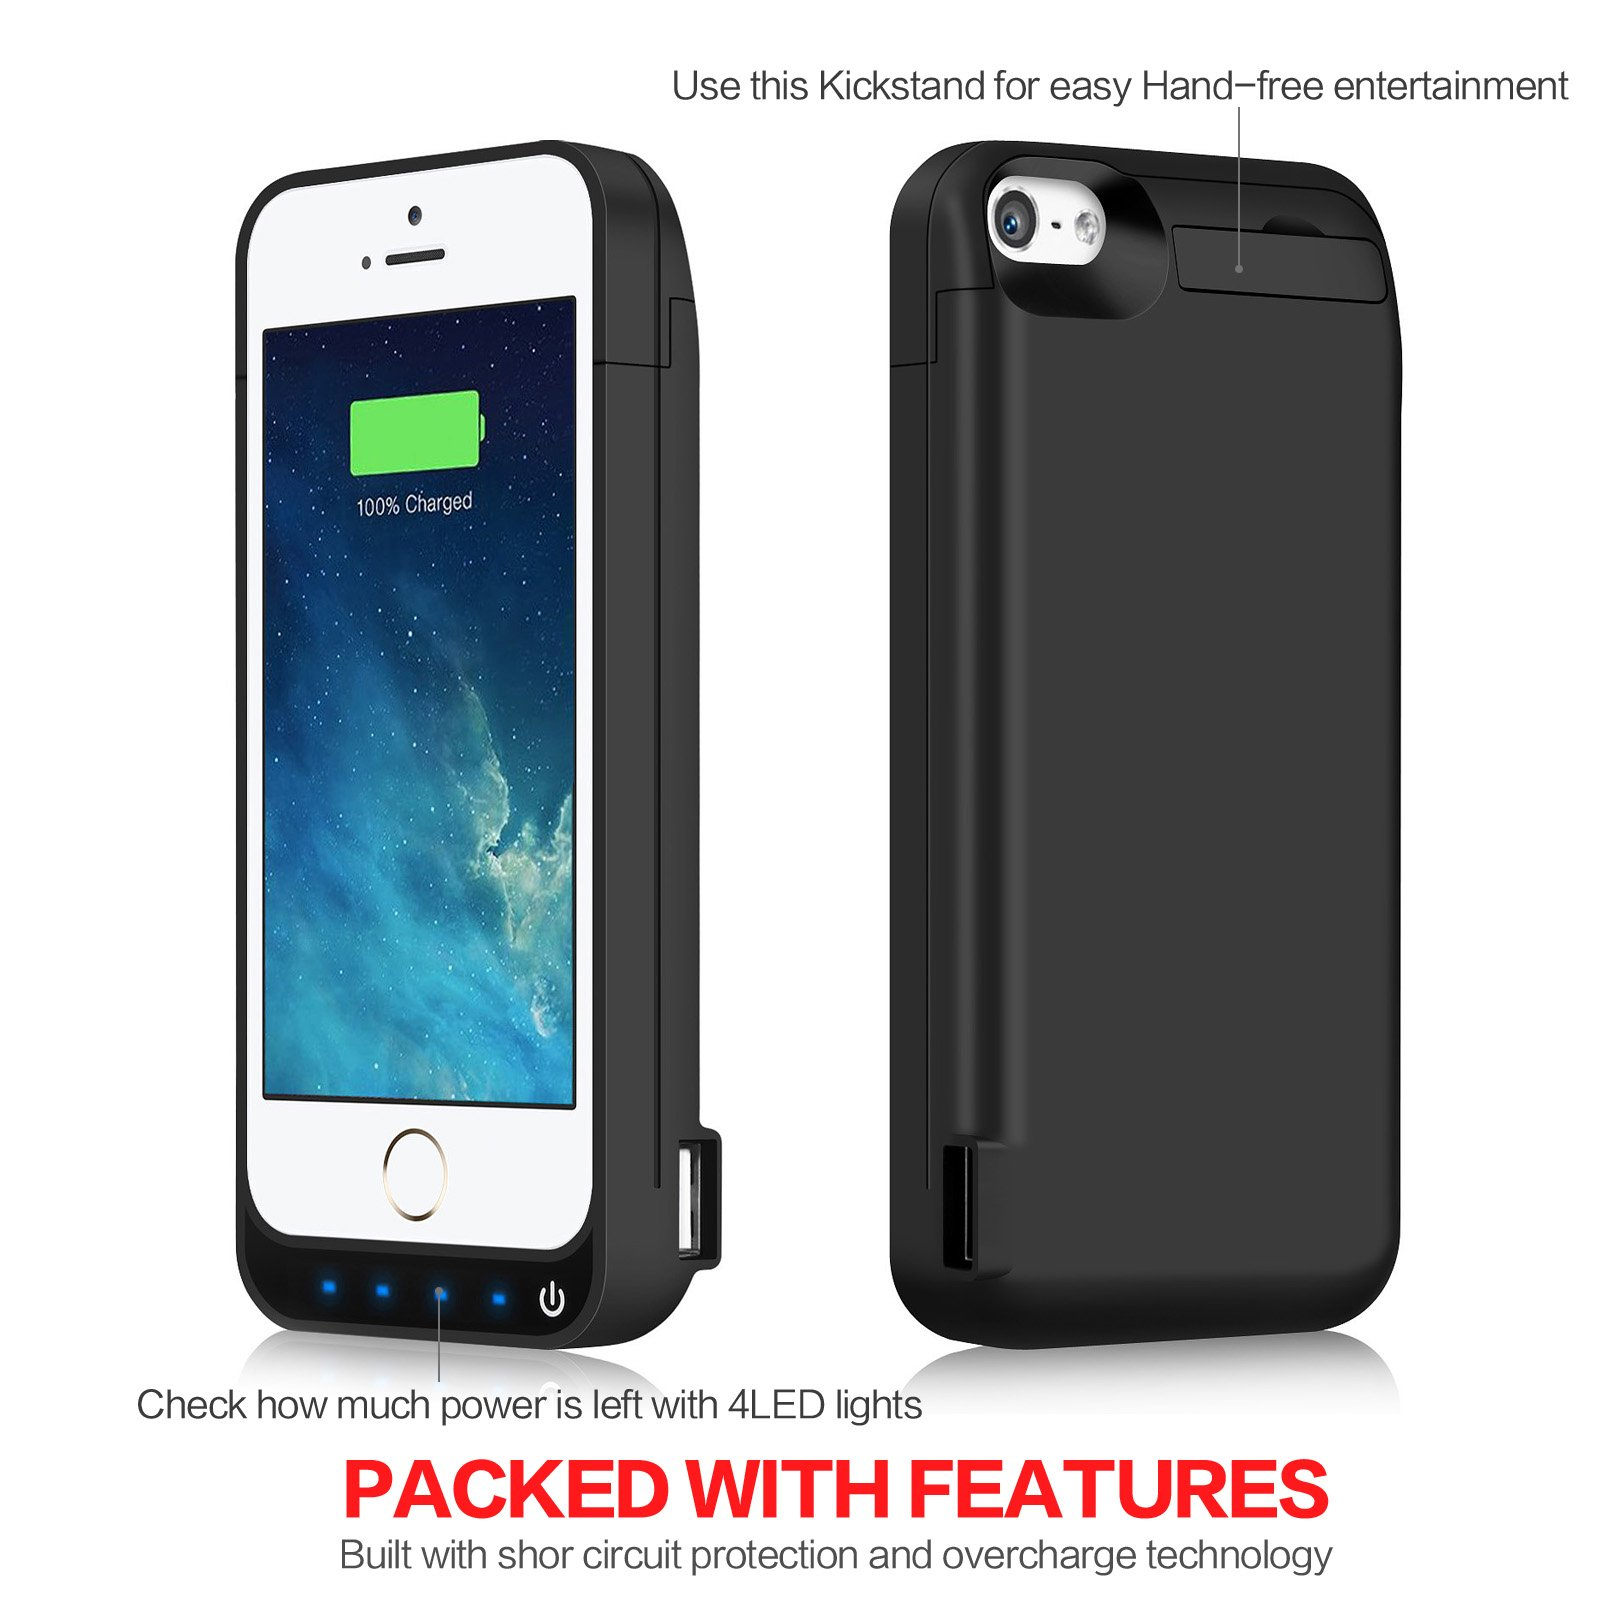 iPhone 5/5S/5C/SE Battery Case iPosible 4500mAh External Rechargeable Charger Case for iPhone 5/5S/5C/SE Charging Case Power Bank Battery Pack [24 Month Warranty] by iPosible (Image #4)